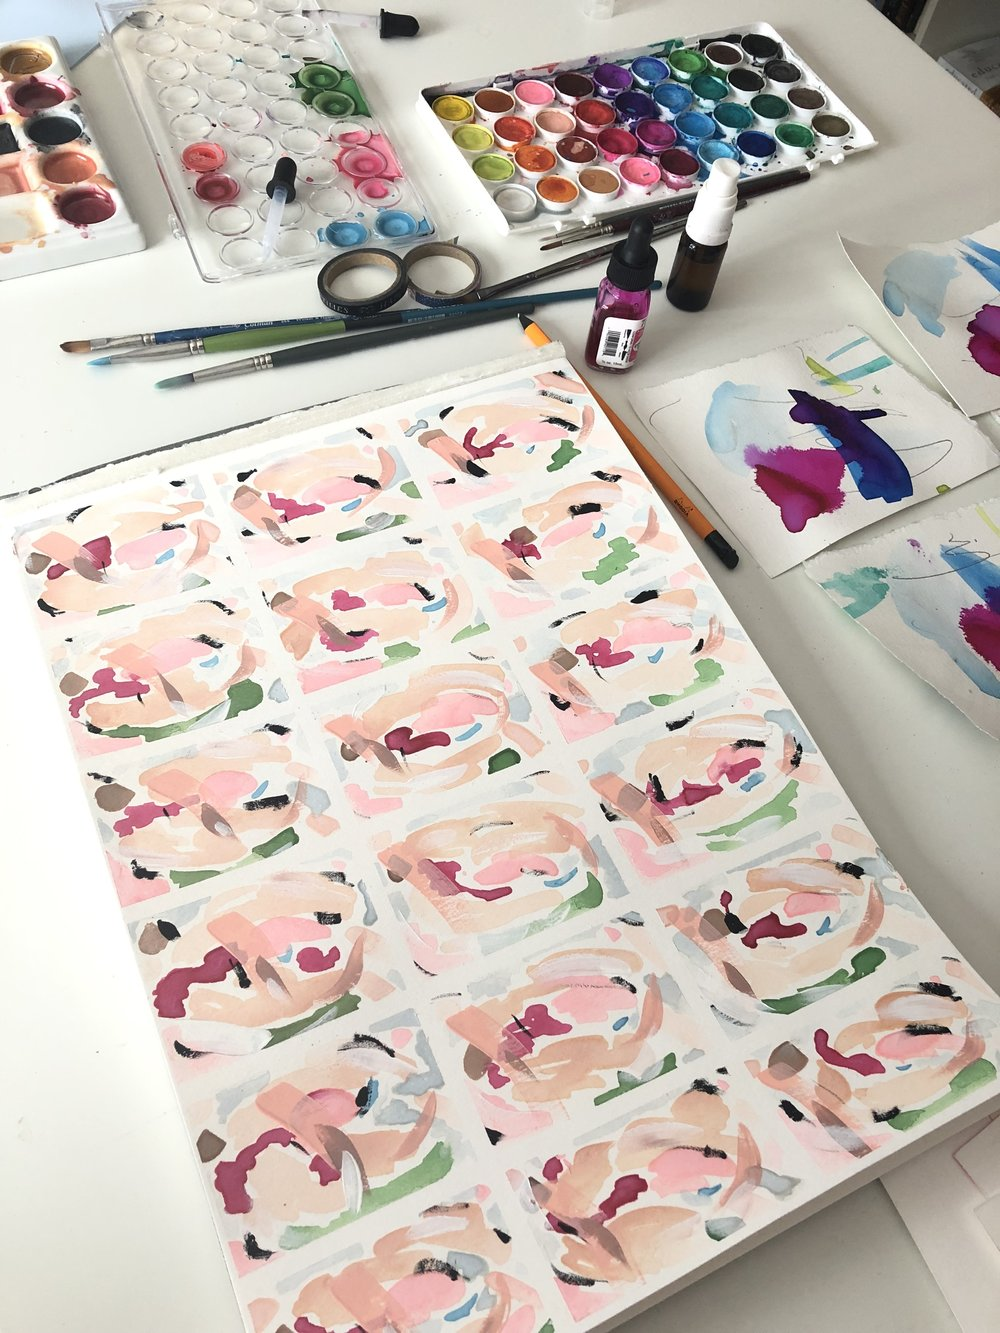 Wait until the paint is dry before you begin to peel away the washi tape.